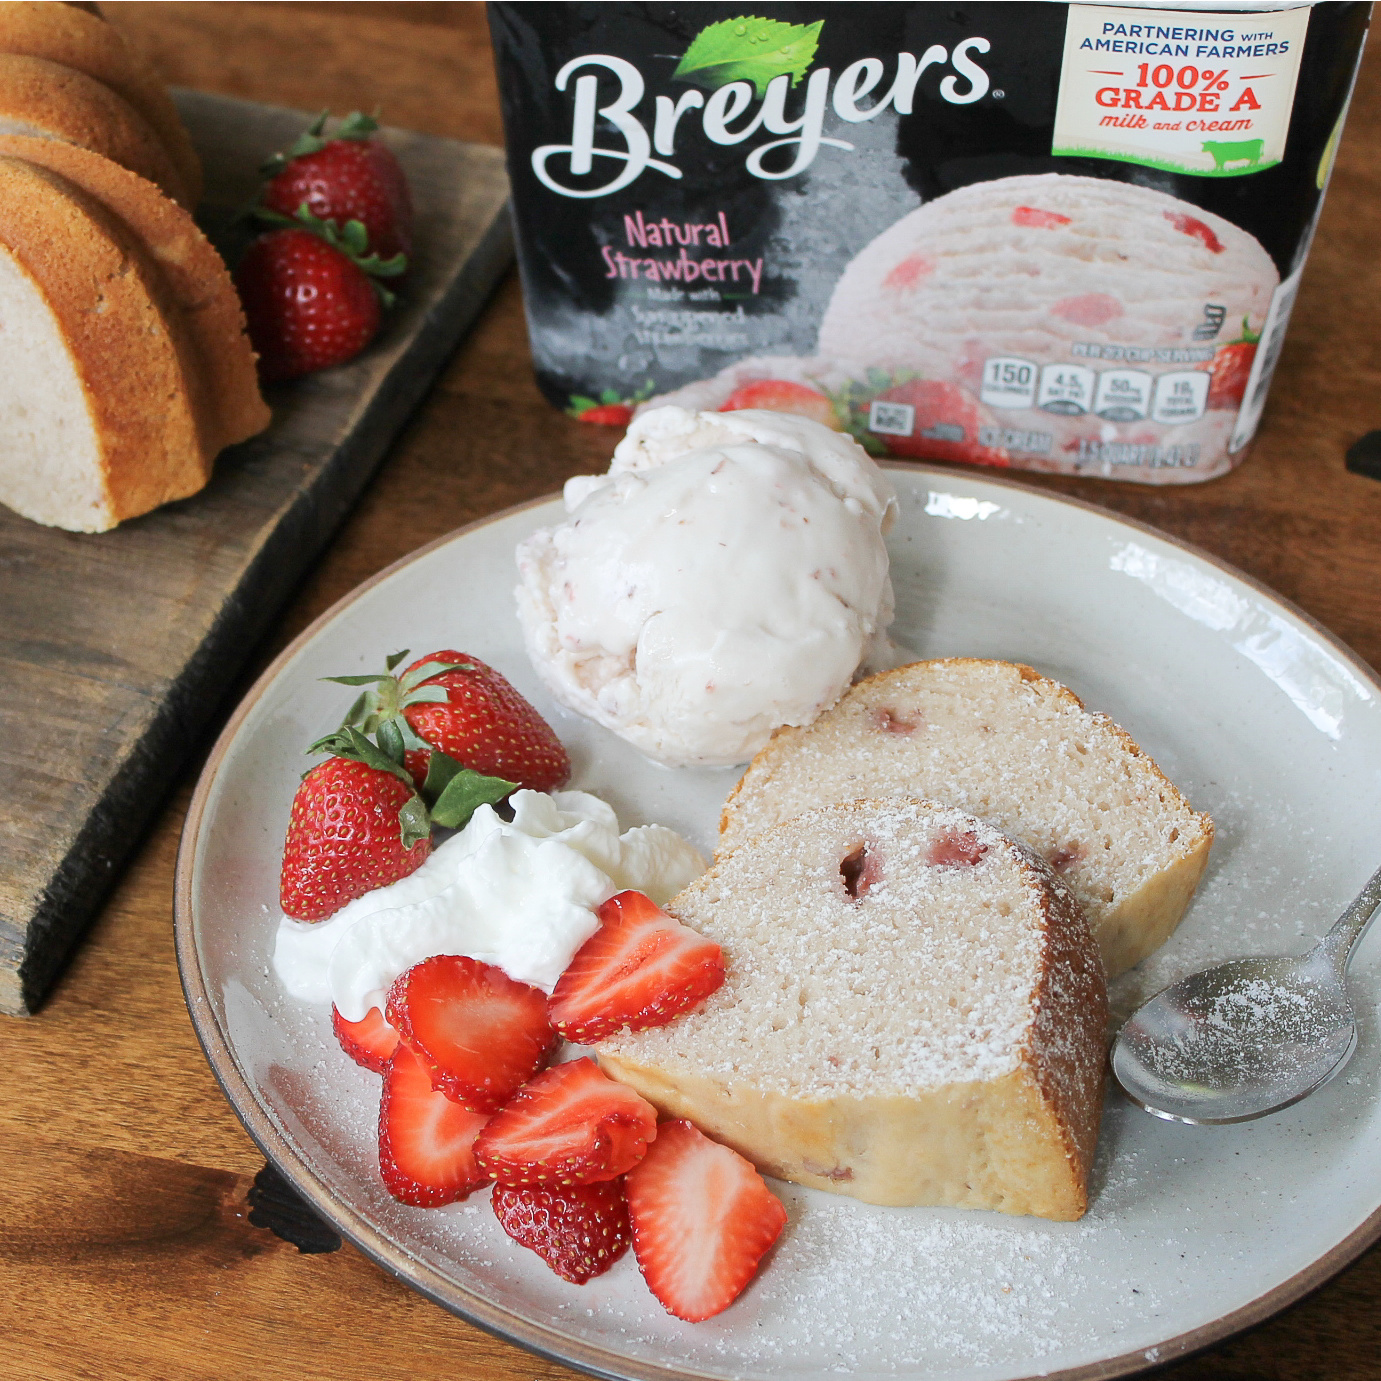 Take Advantage Of The Breyers BOGO & Whip Up A Dairy Free Ice Cream Cake! on I Heart Publix 2